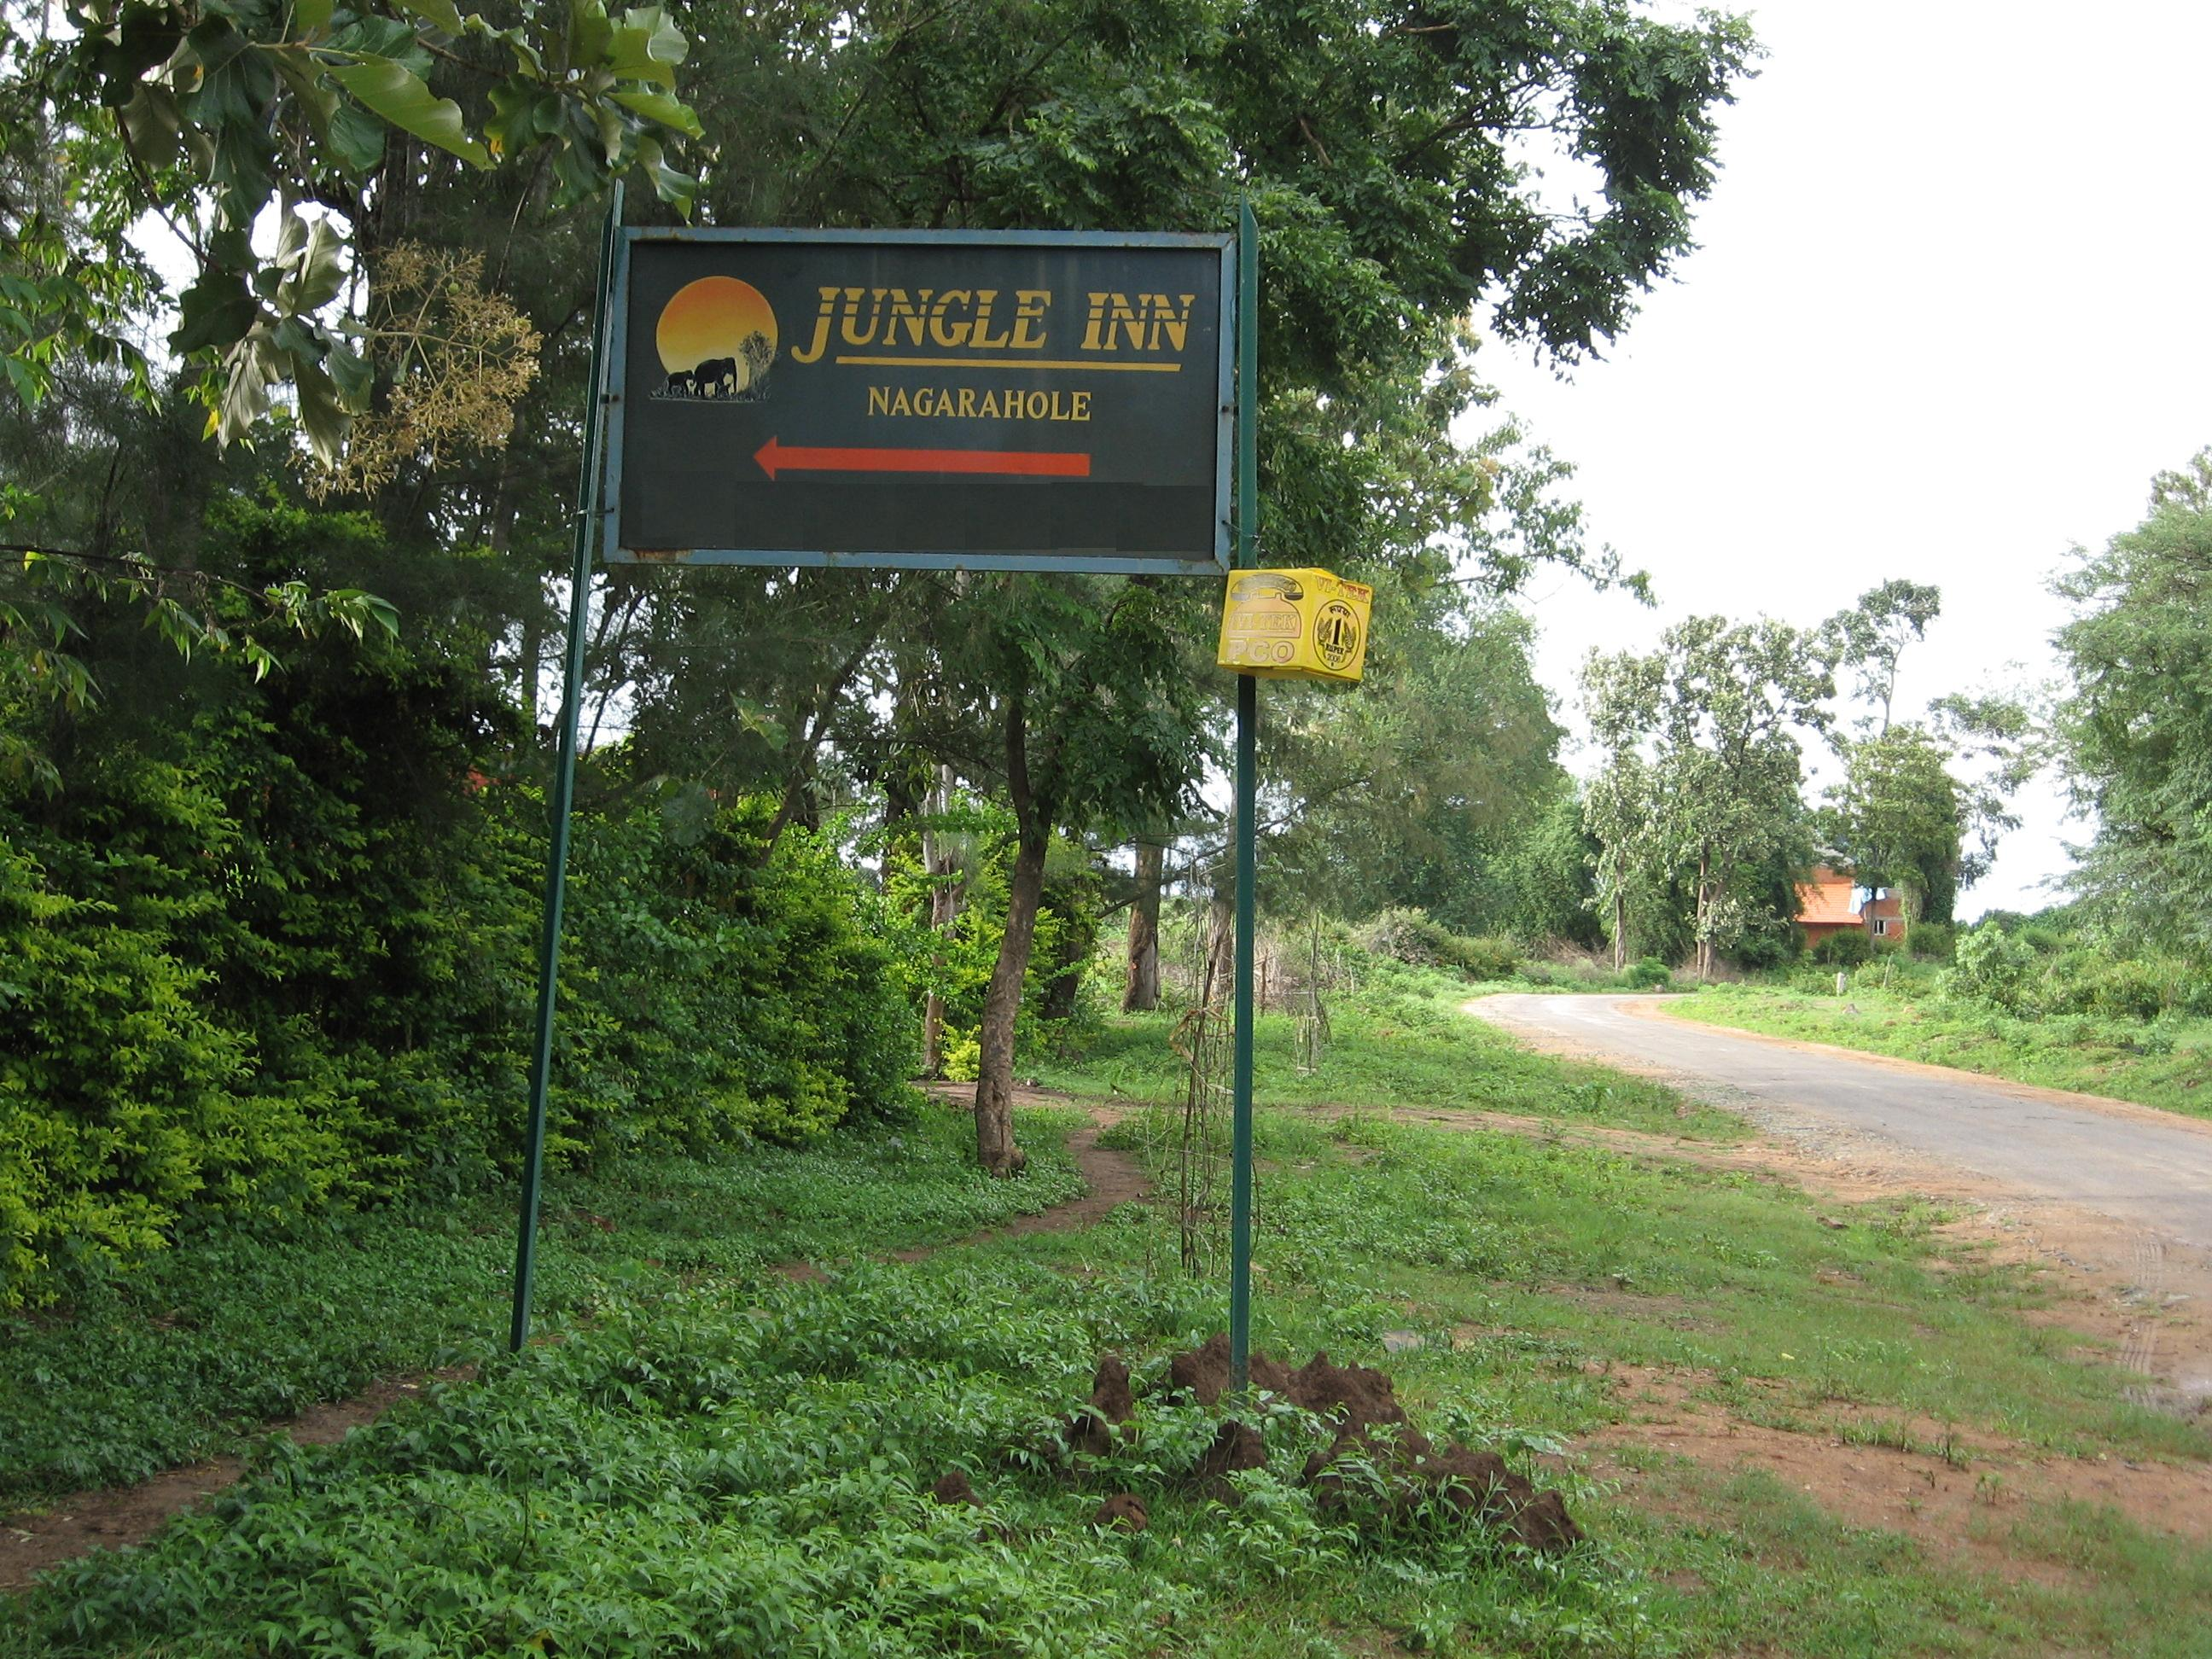 Jungle inn